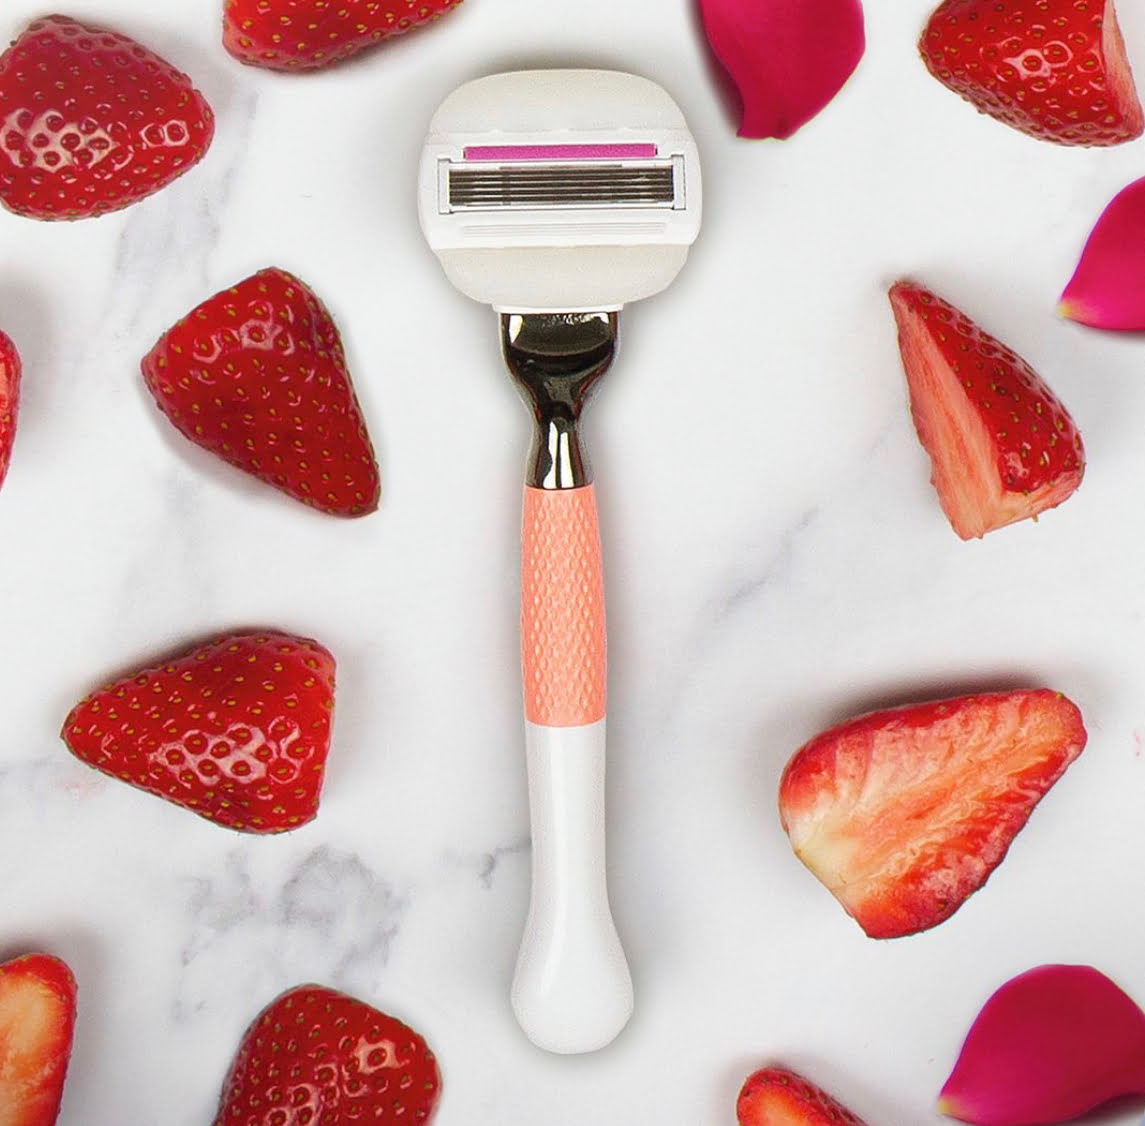 Gillette Venus Strawberry Edition Razor